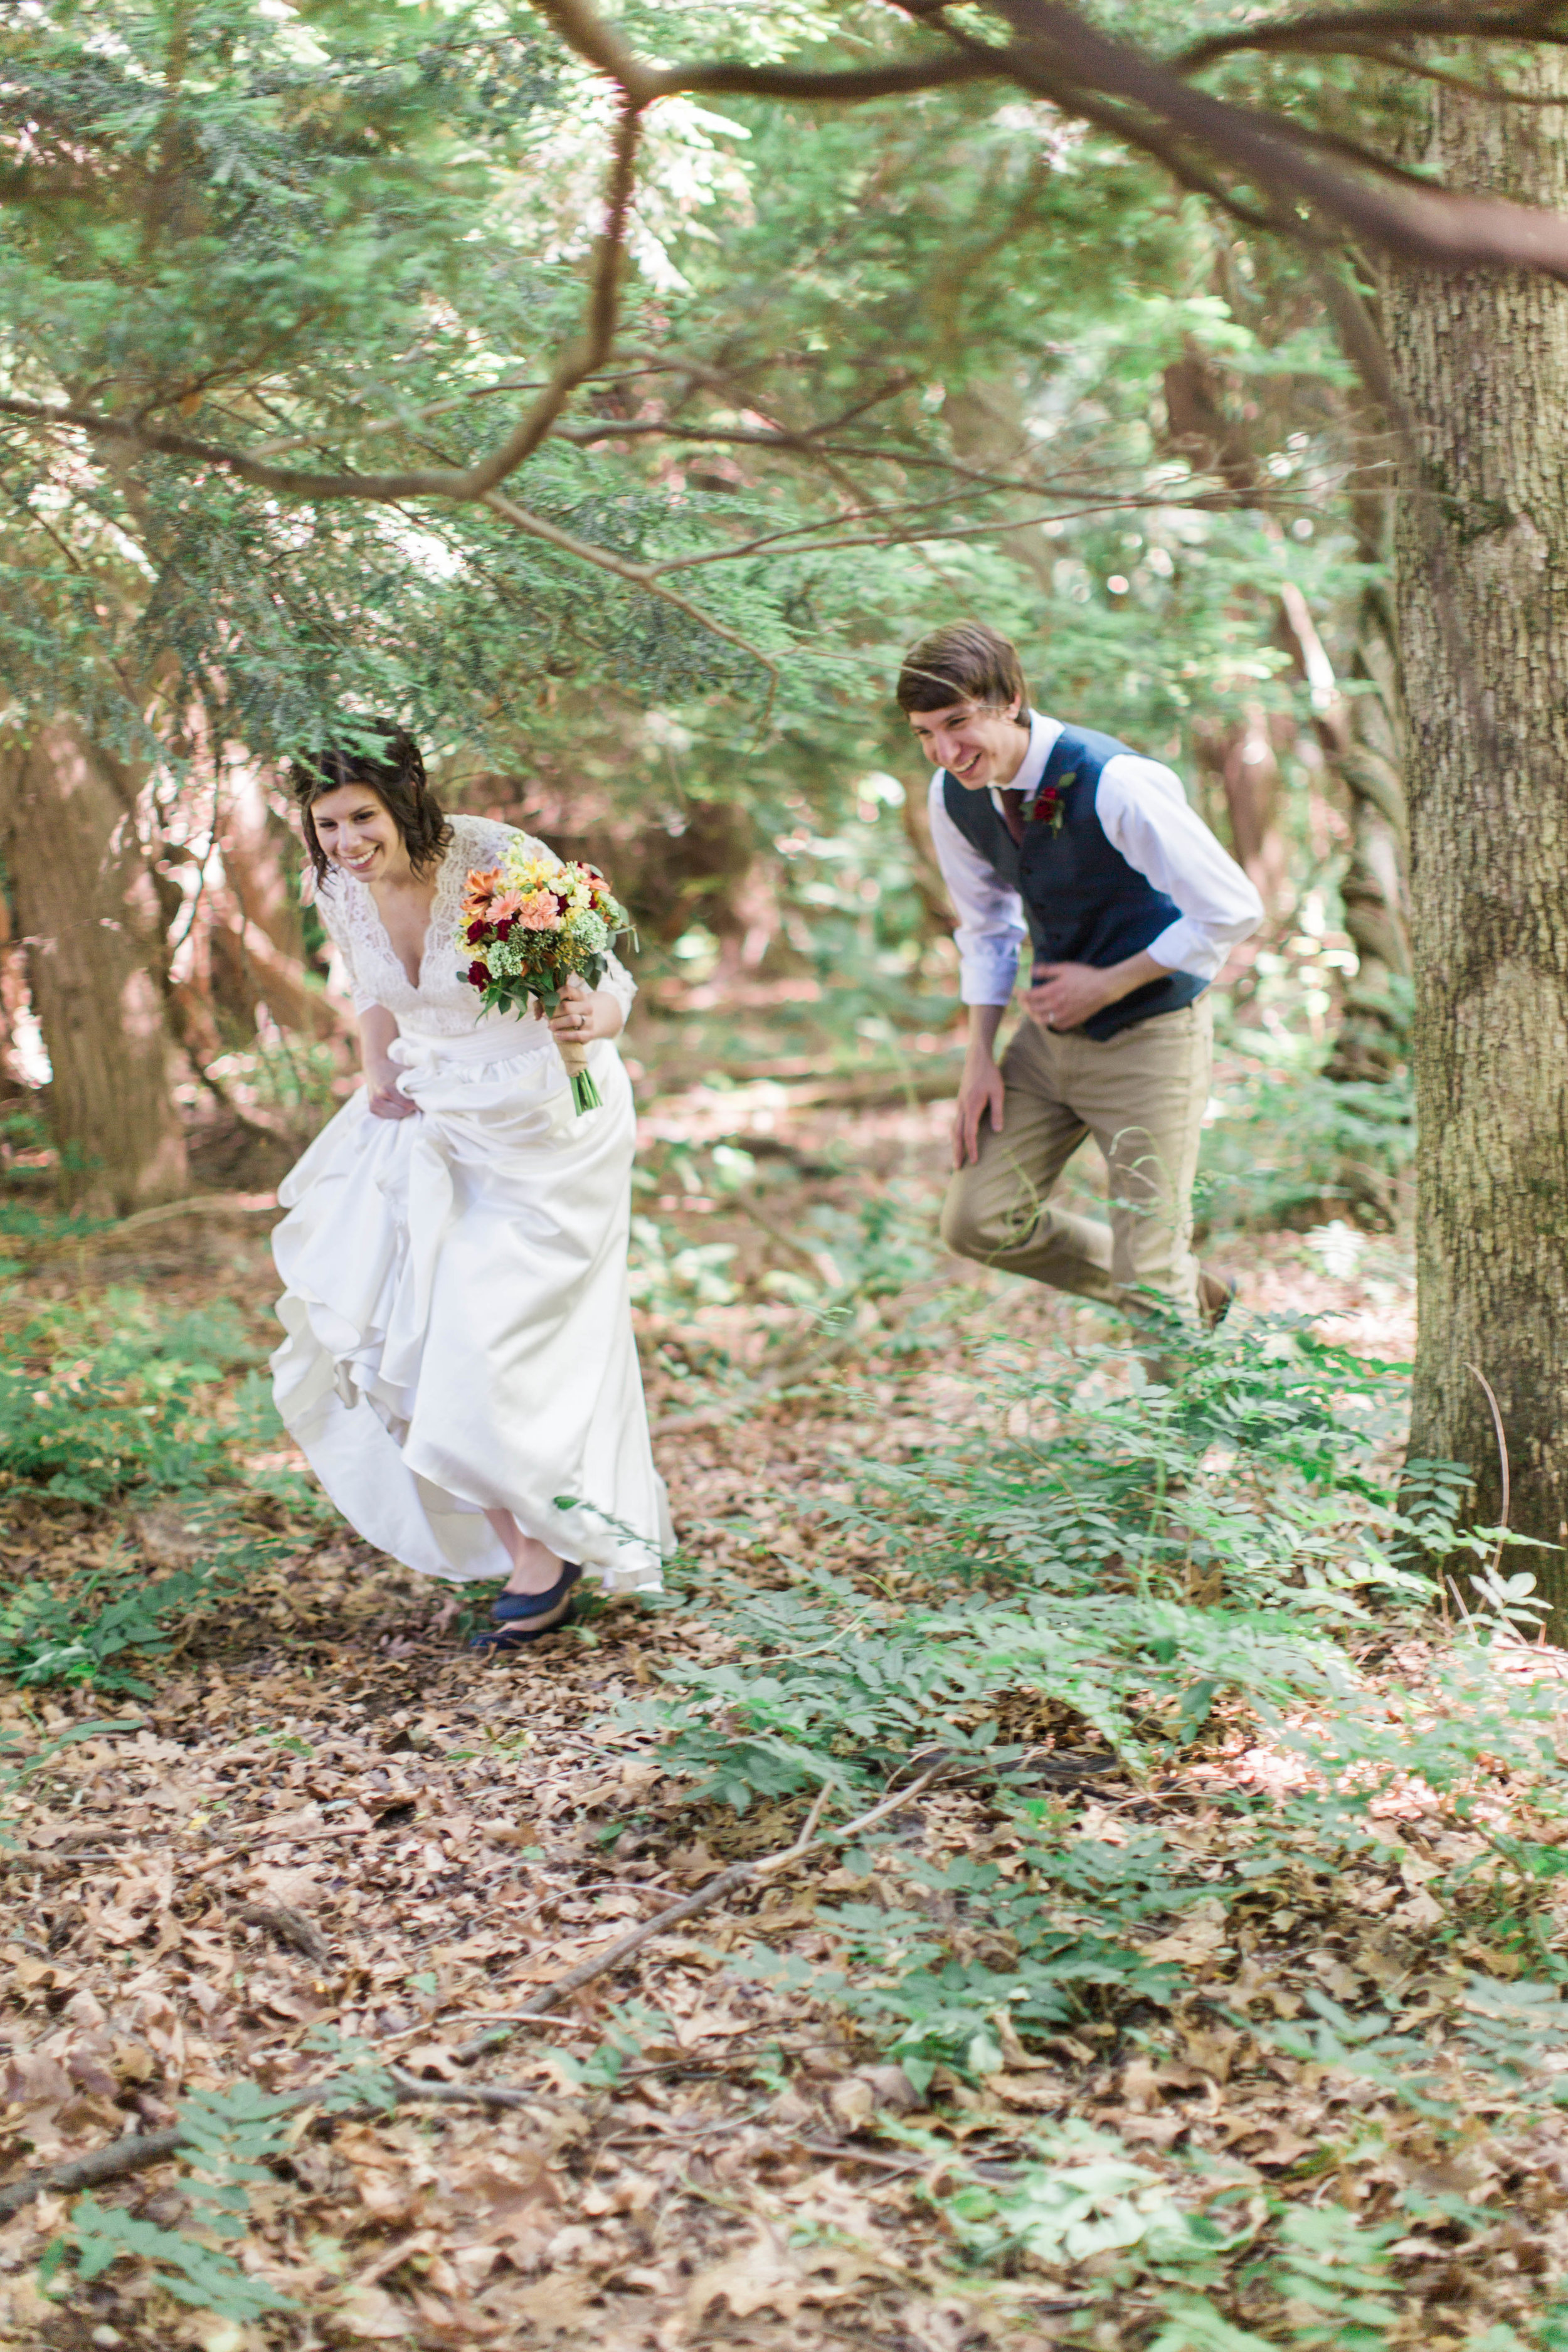 A Tuesday Afternoon Elopement